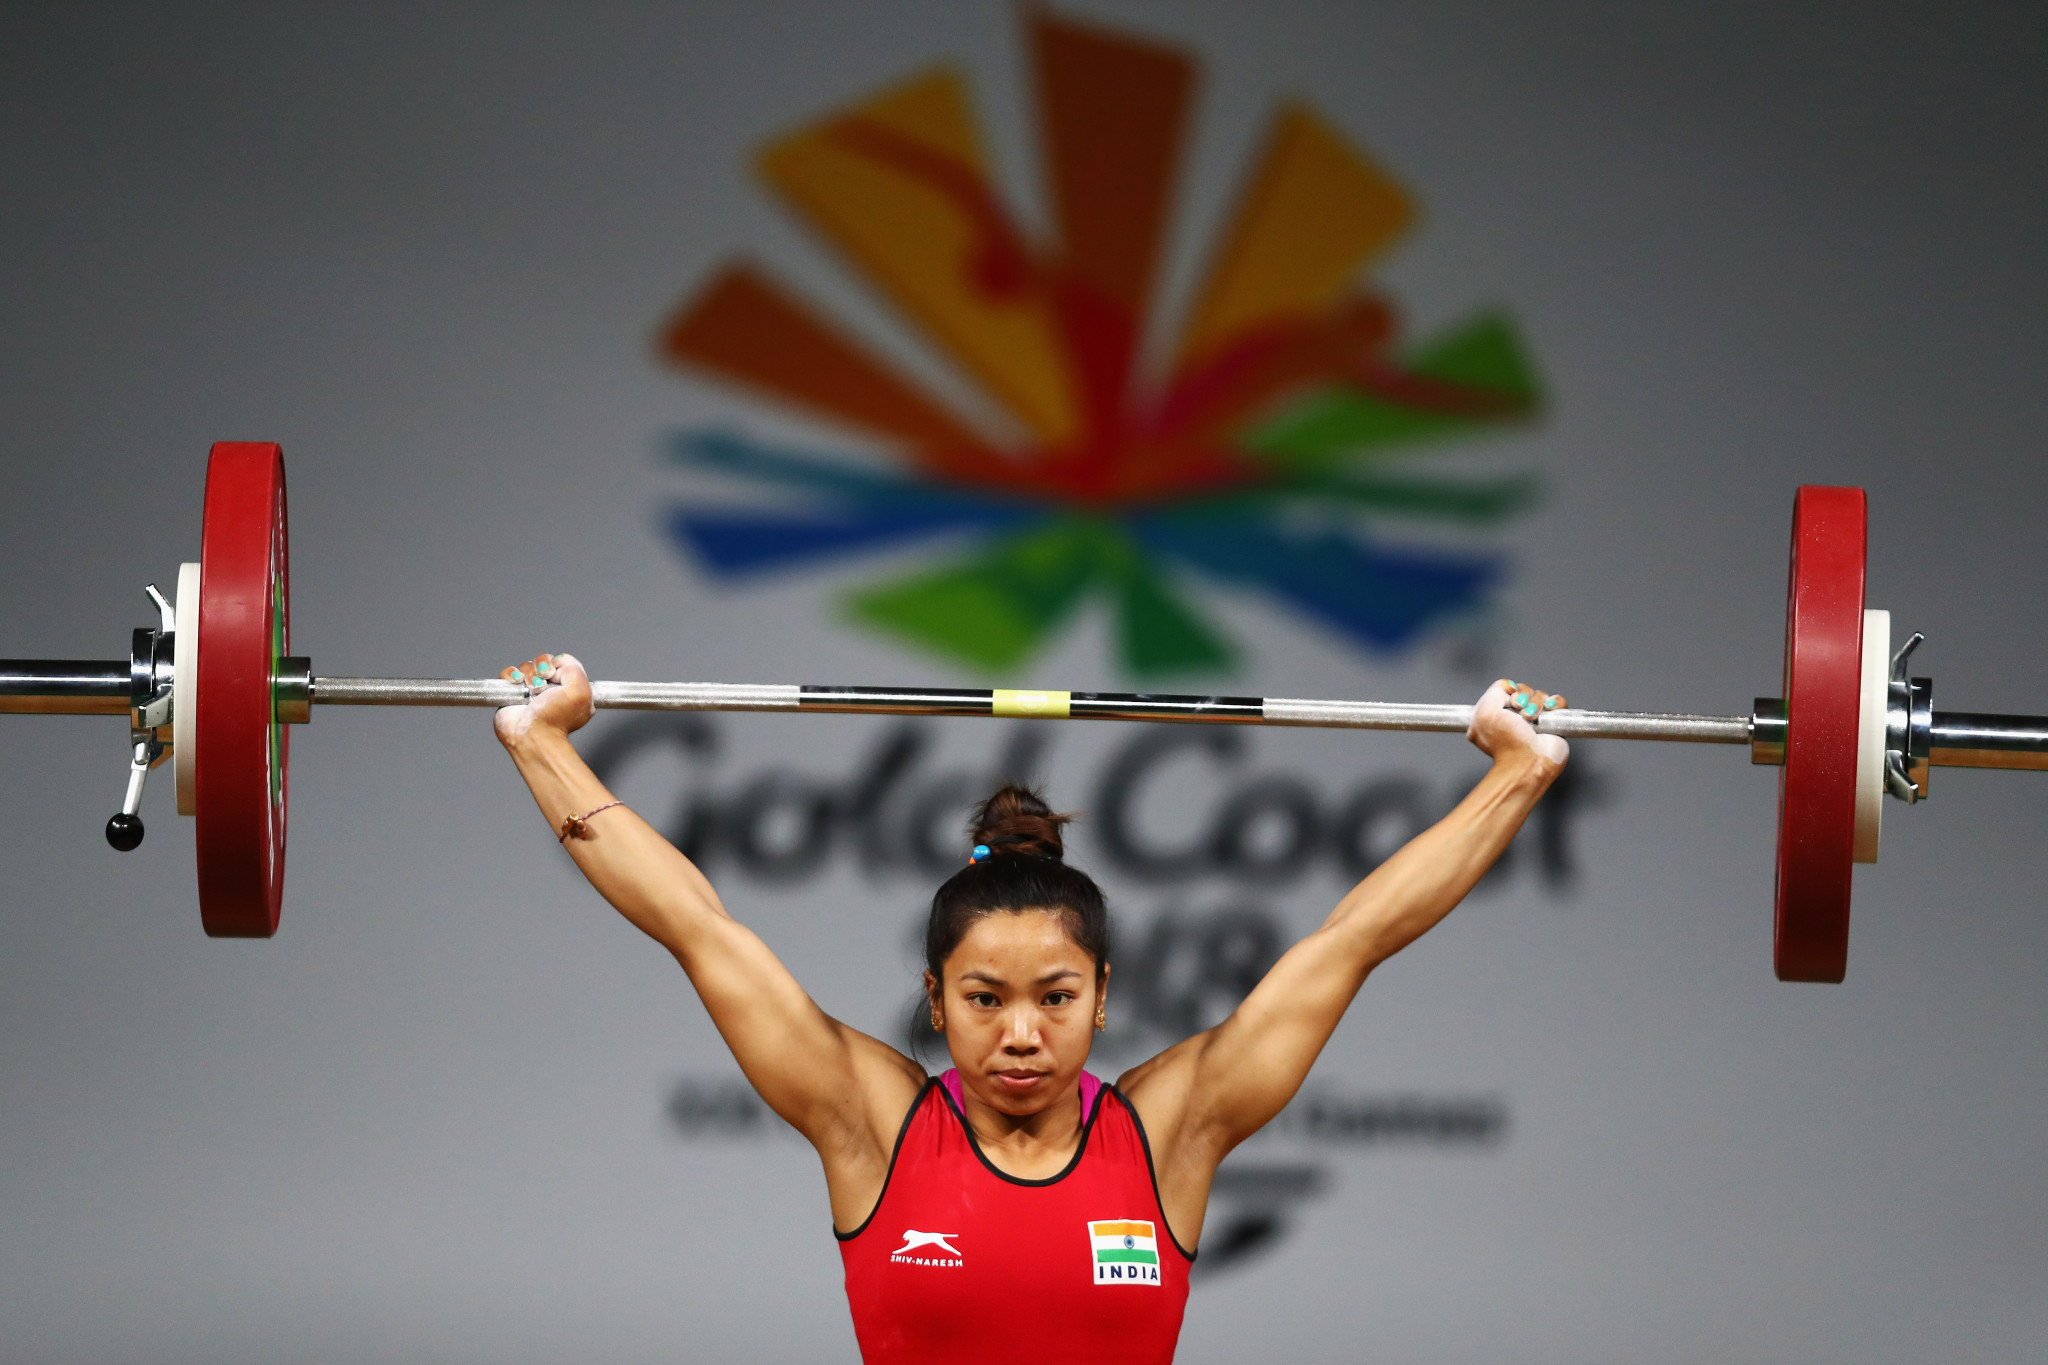 India's Commonwealth Games gold medallist Mirabai Chanu has withdrawn from the 2018 Asian Games because of injury ©Getty Images